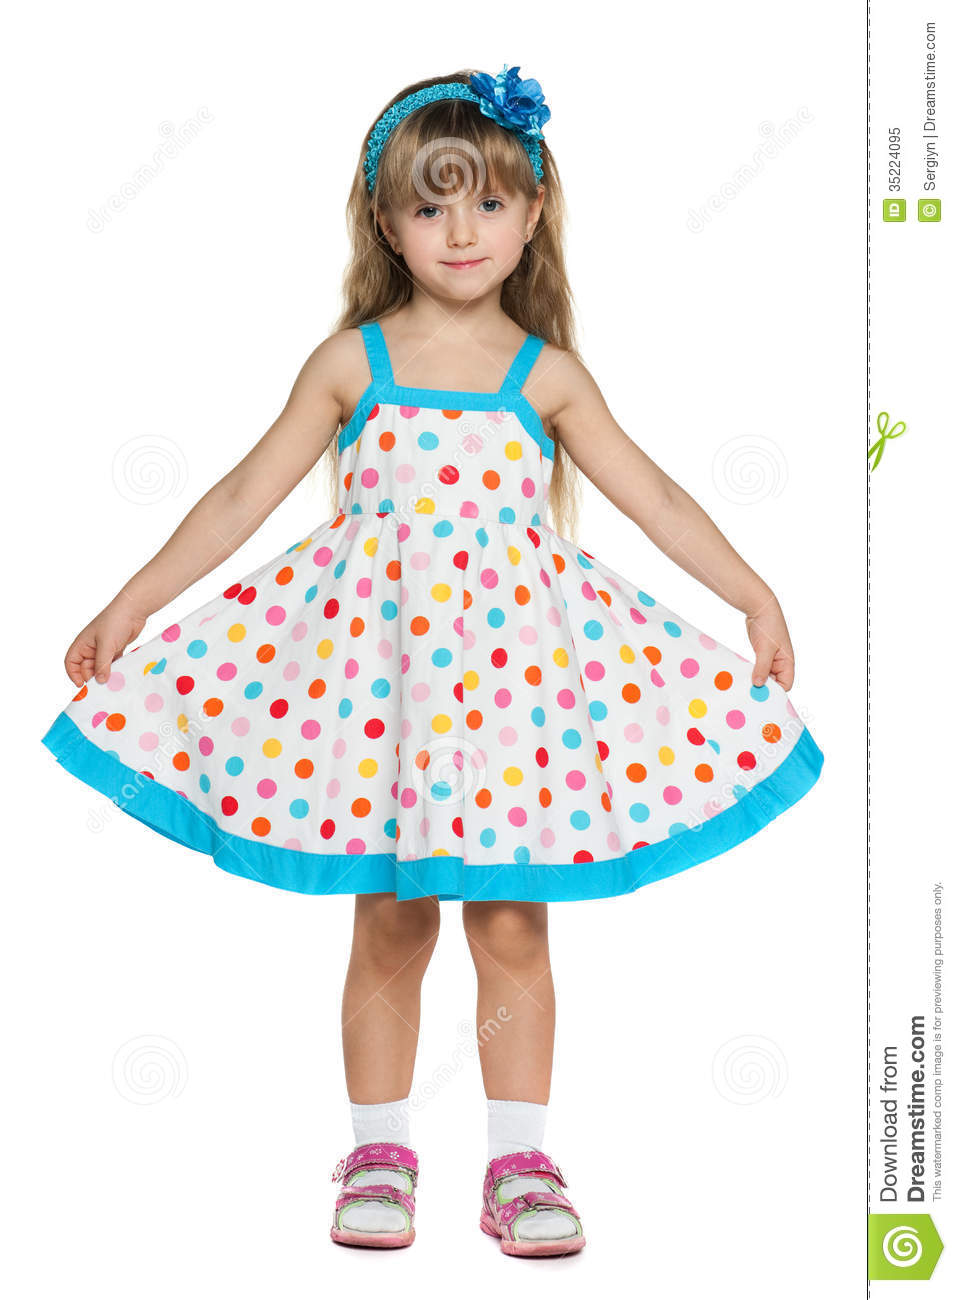 Little Girl In Polka Dot Dress Royalty Free Stock Photo - Image ...